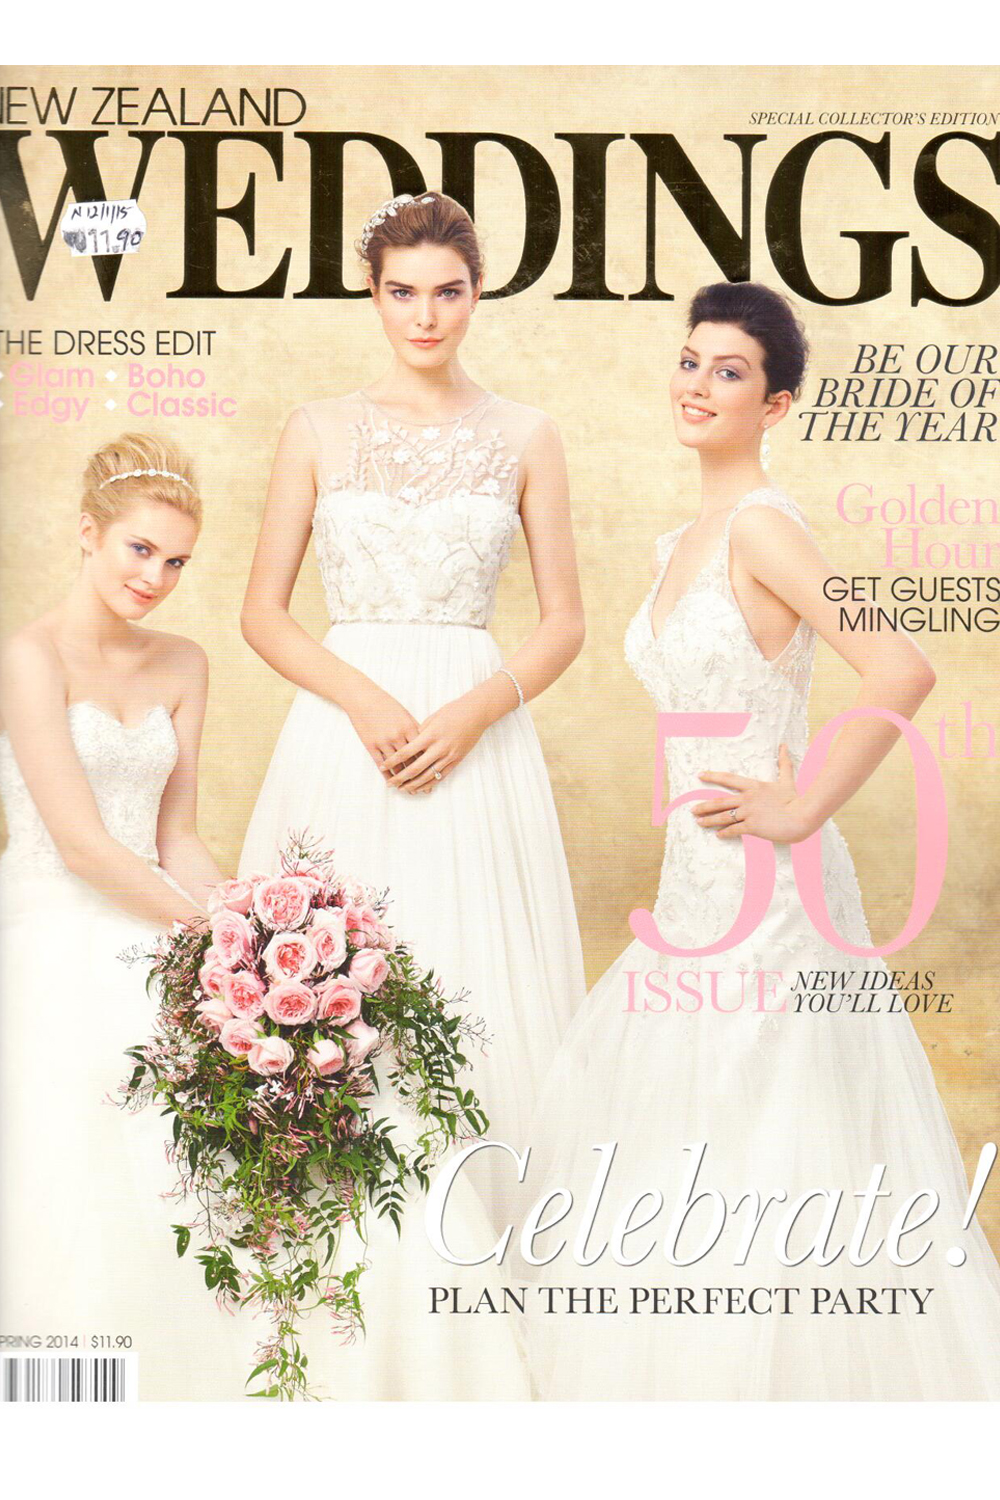 PHB.NZWEDDINGS.SPRINGCOVER copy.jpg